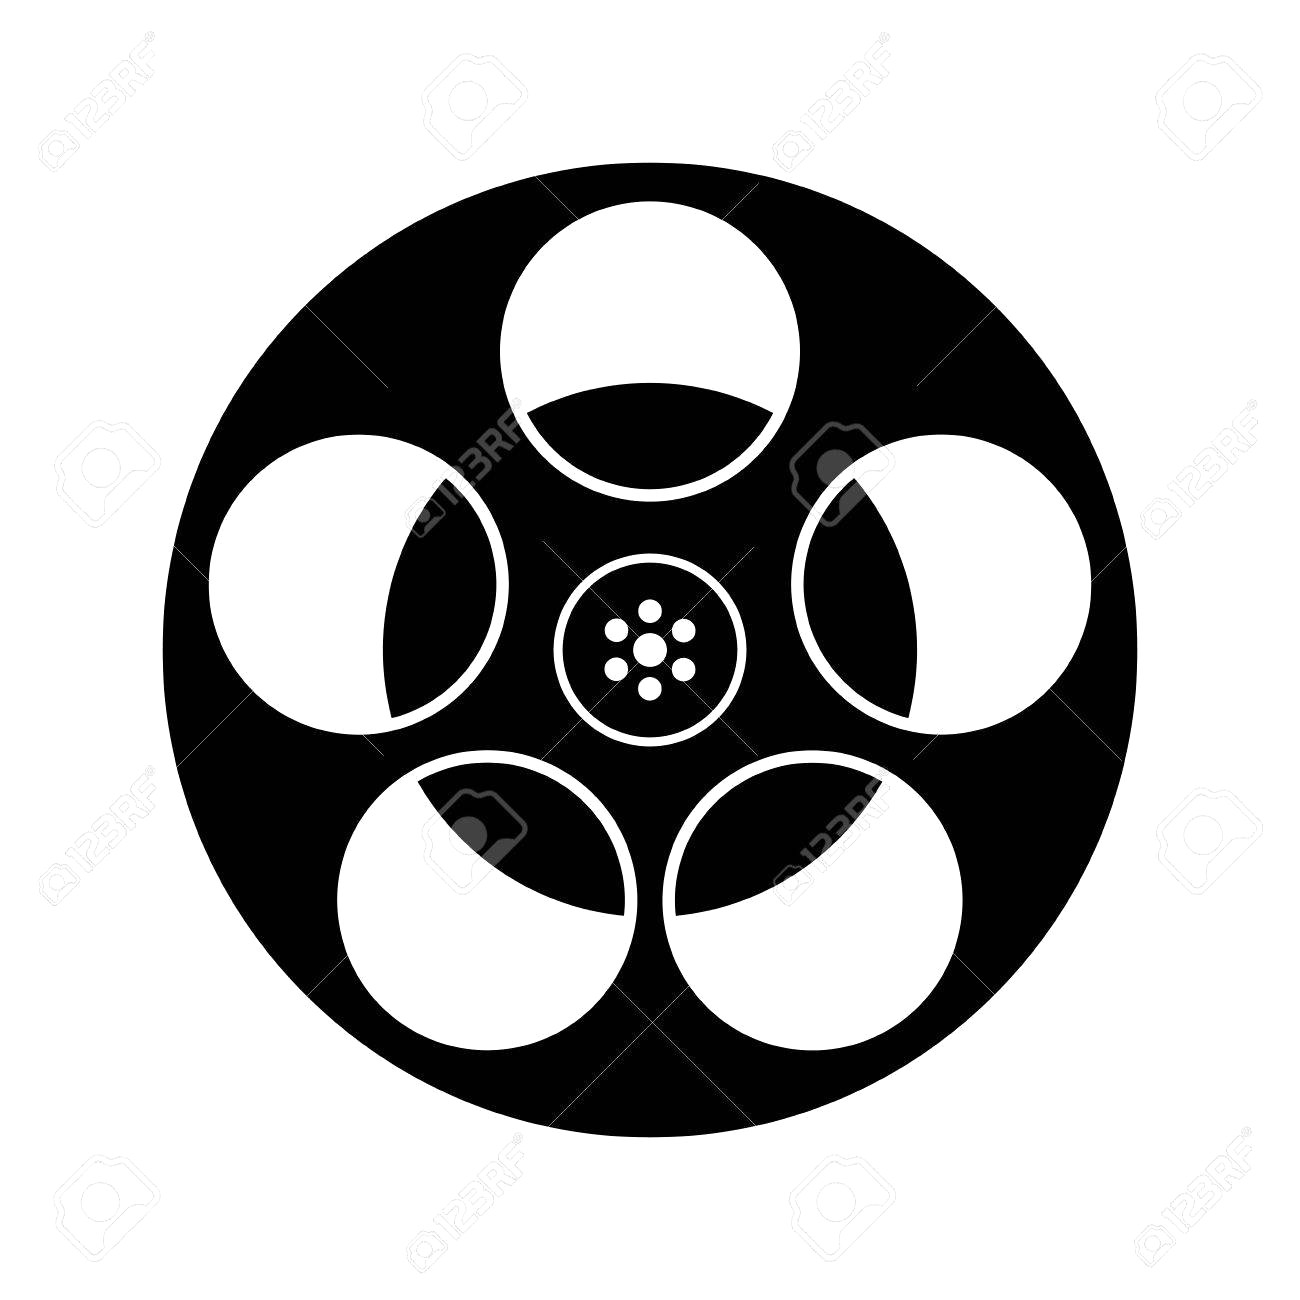 hight resolution of film reels clipart 2